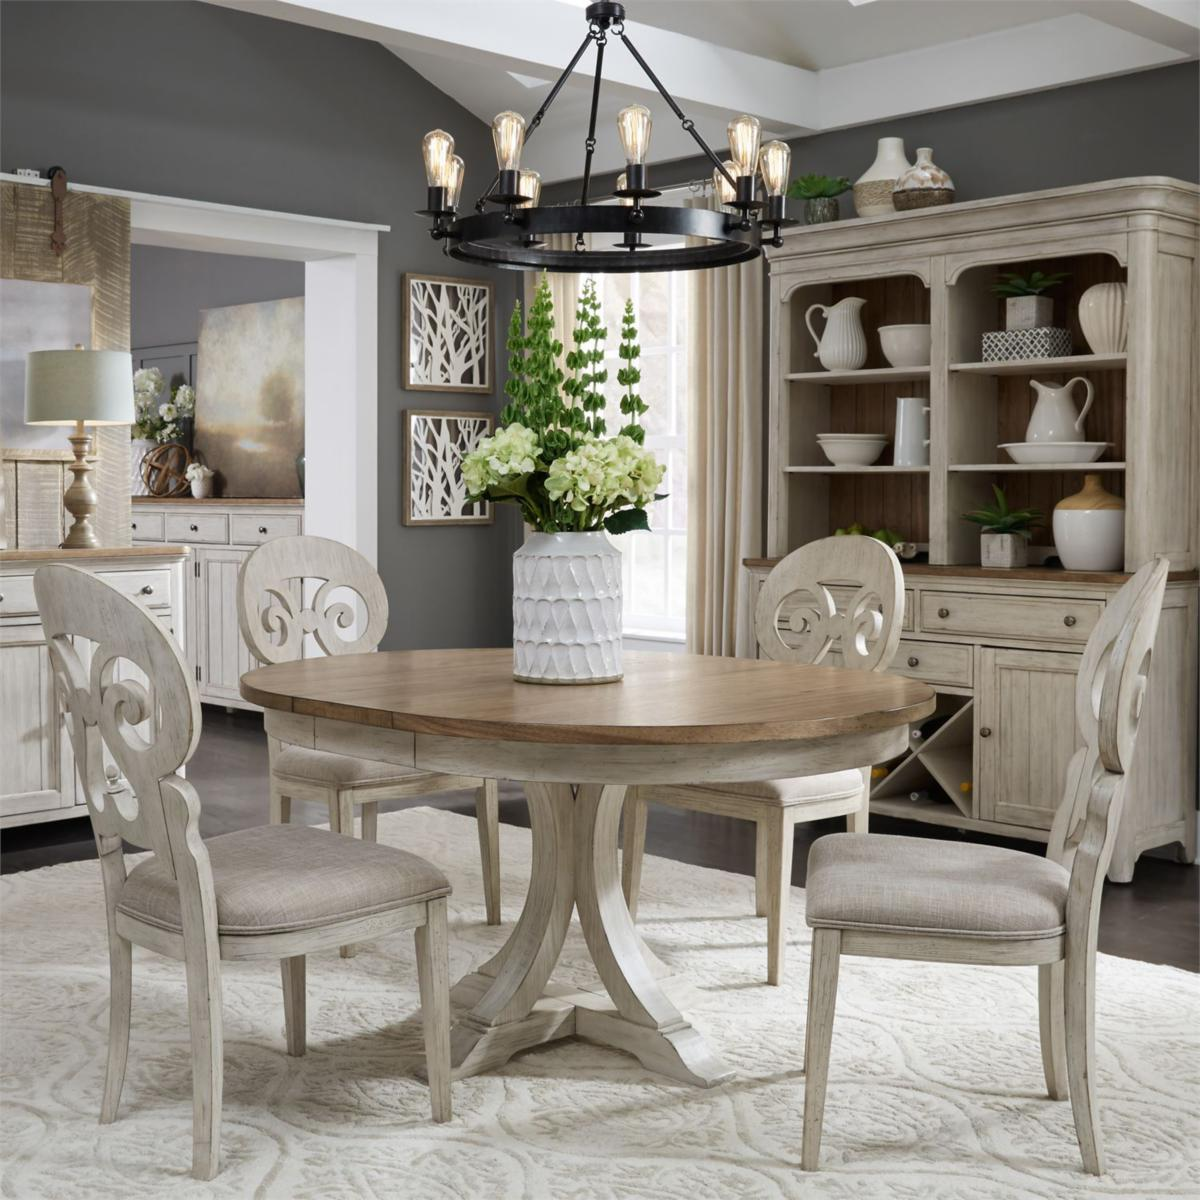 Post image for Home Décor Trends 2020 Spotlight: Formal Dining Rooms